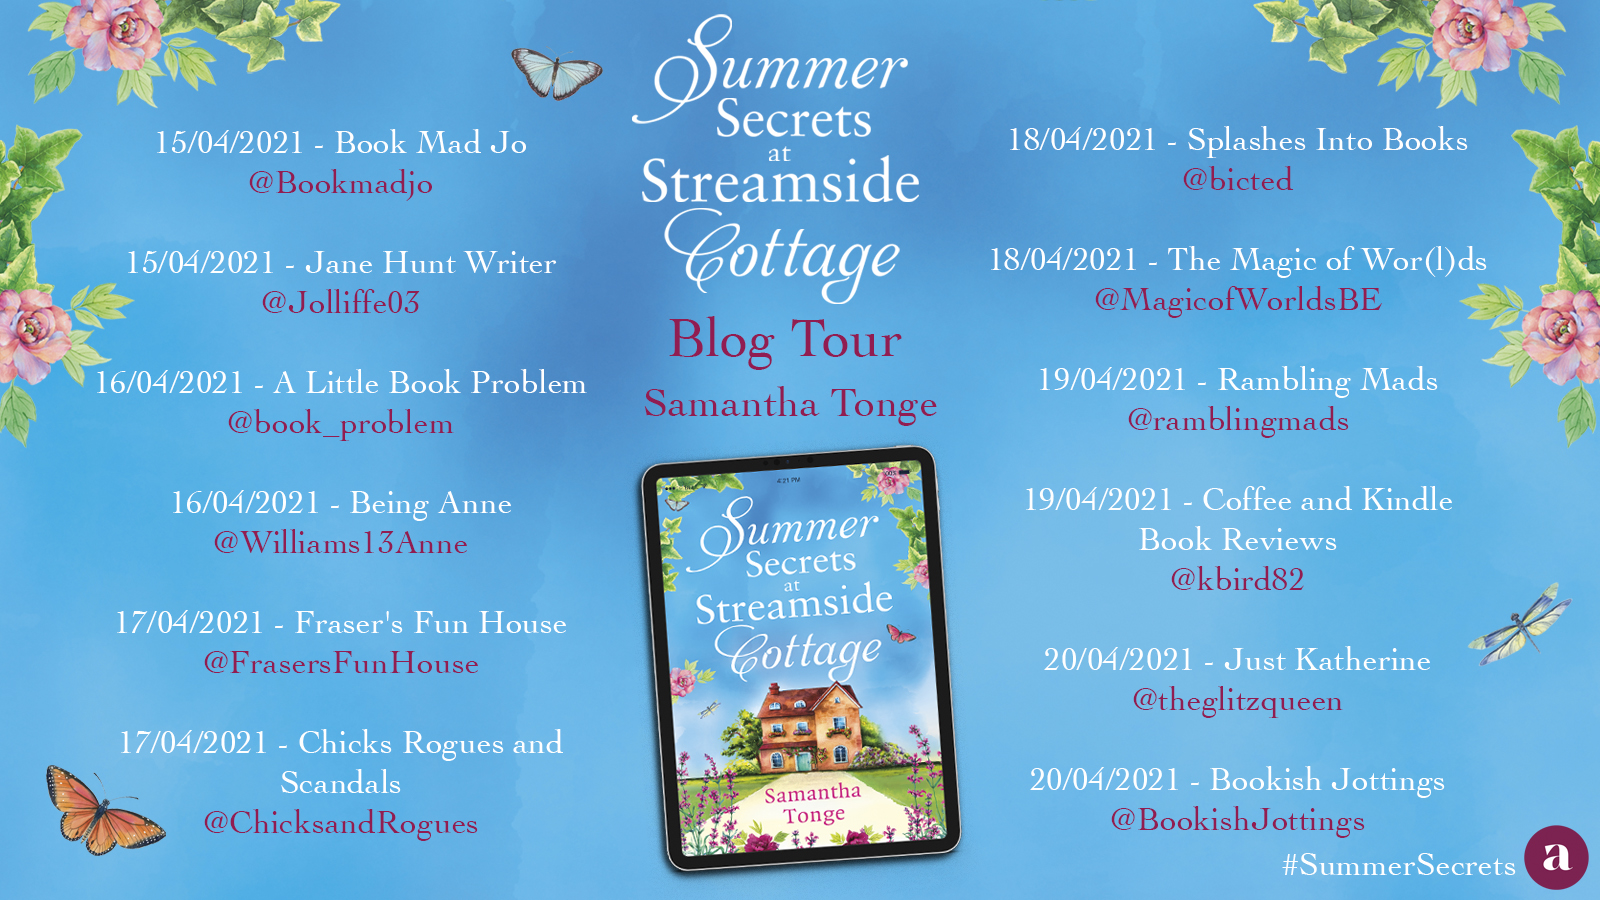 Summer Secrets at Streamside Blog Tour 1